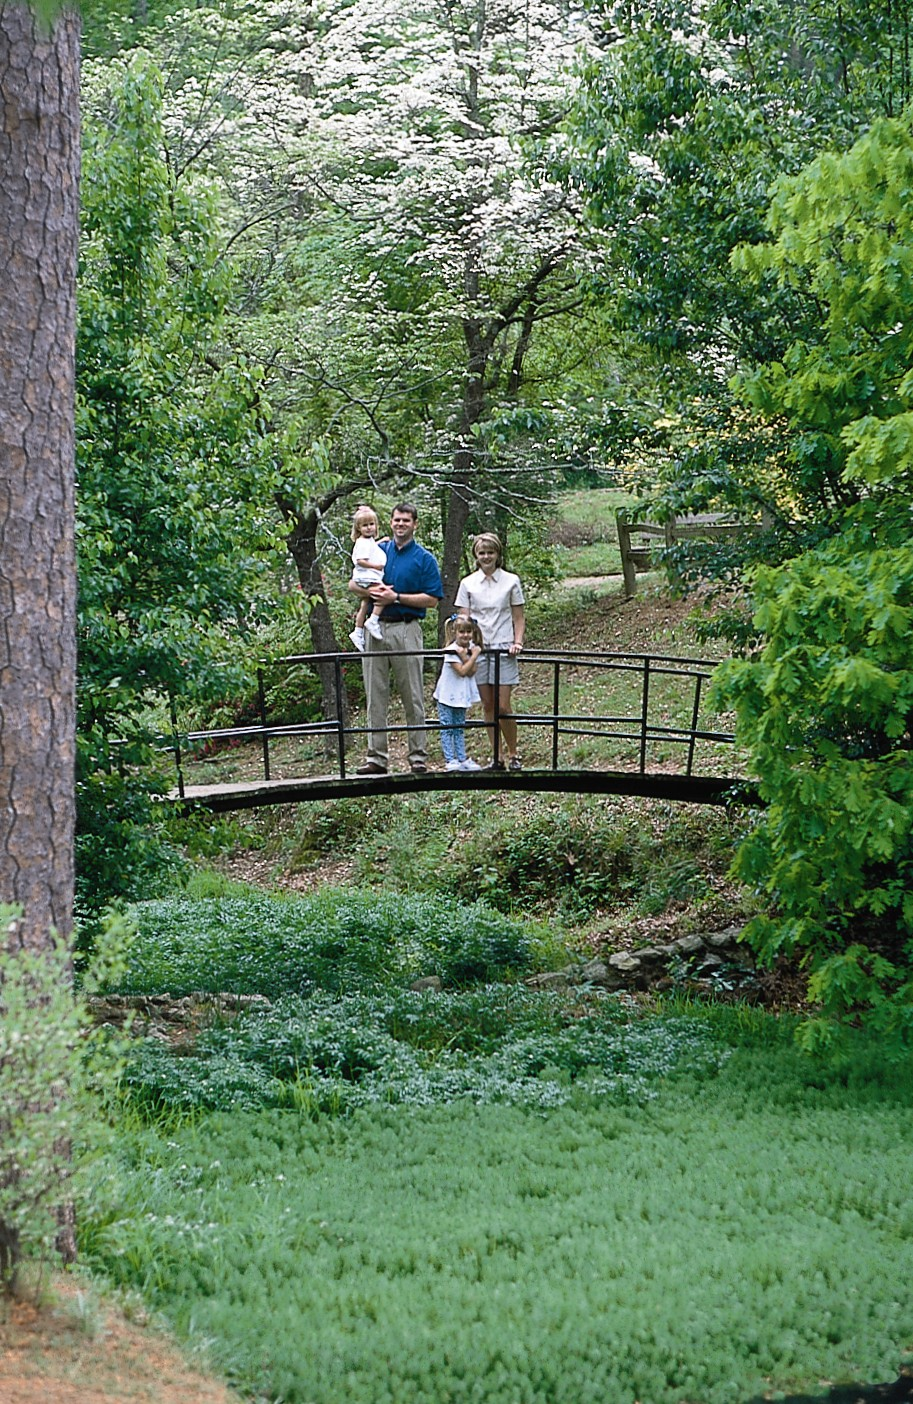 Places to Visit in Georgia  The Academy Springs Park Places to visit in Georgia  Academy Springs Park is a relaxing thing to do  near